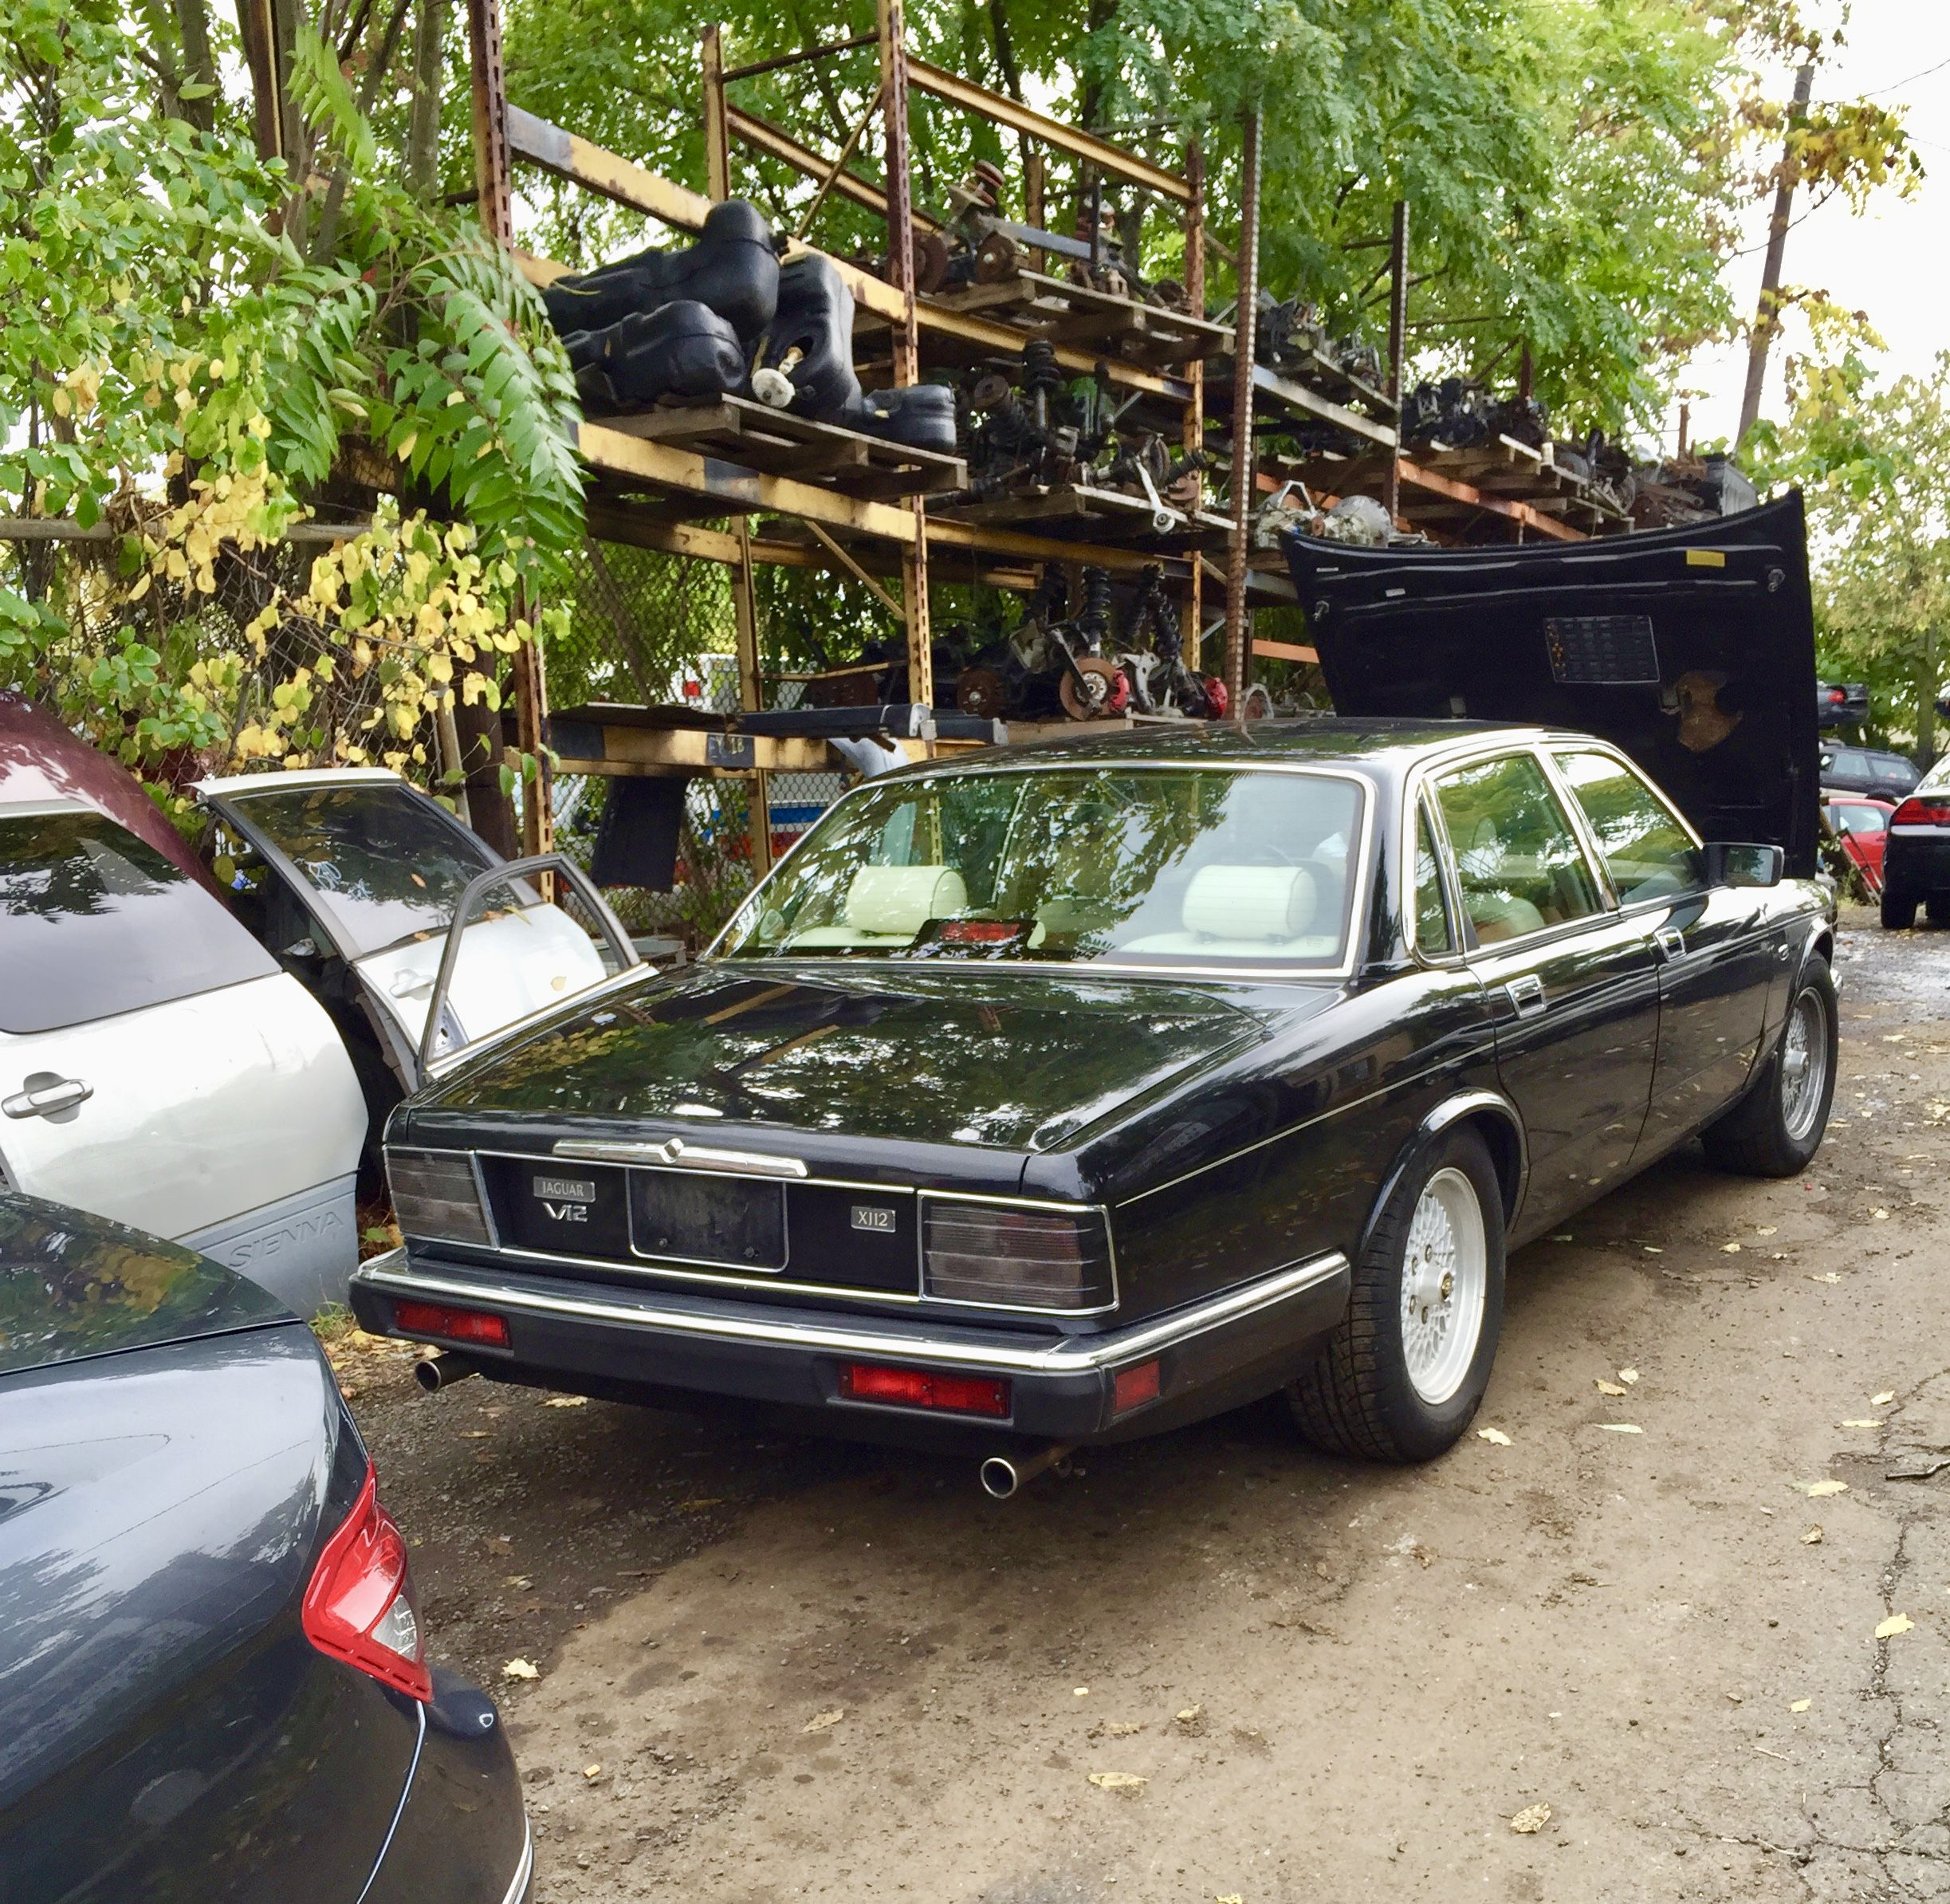 Jaguar Xj12 Towed To Salvage Yard In Union Nj Had I Known It Was